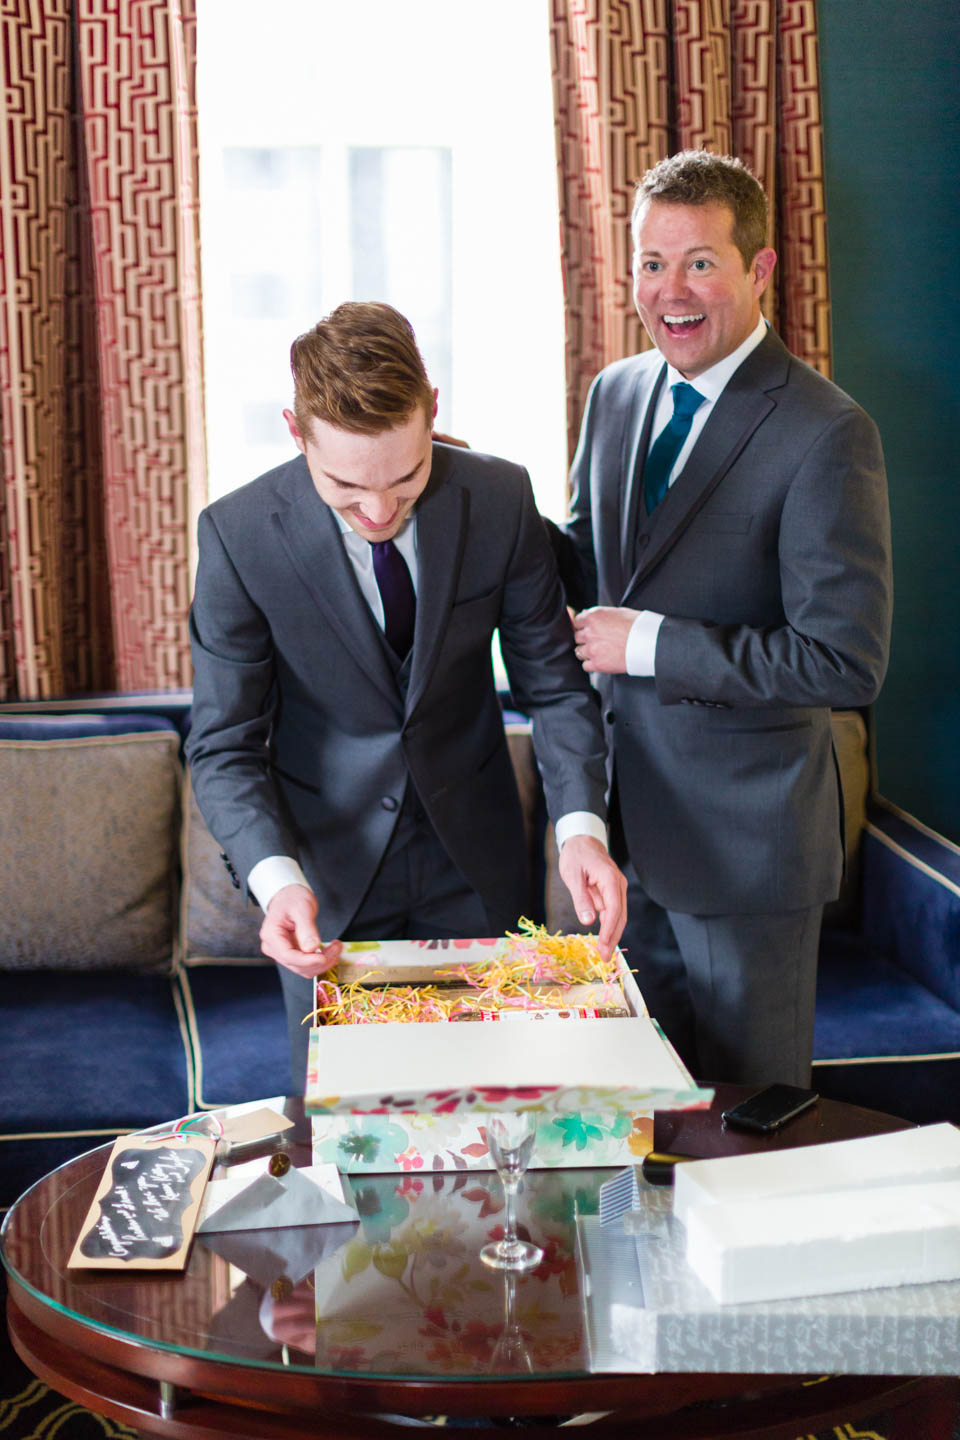 Grooms receive the wedding gift